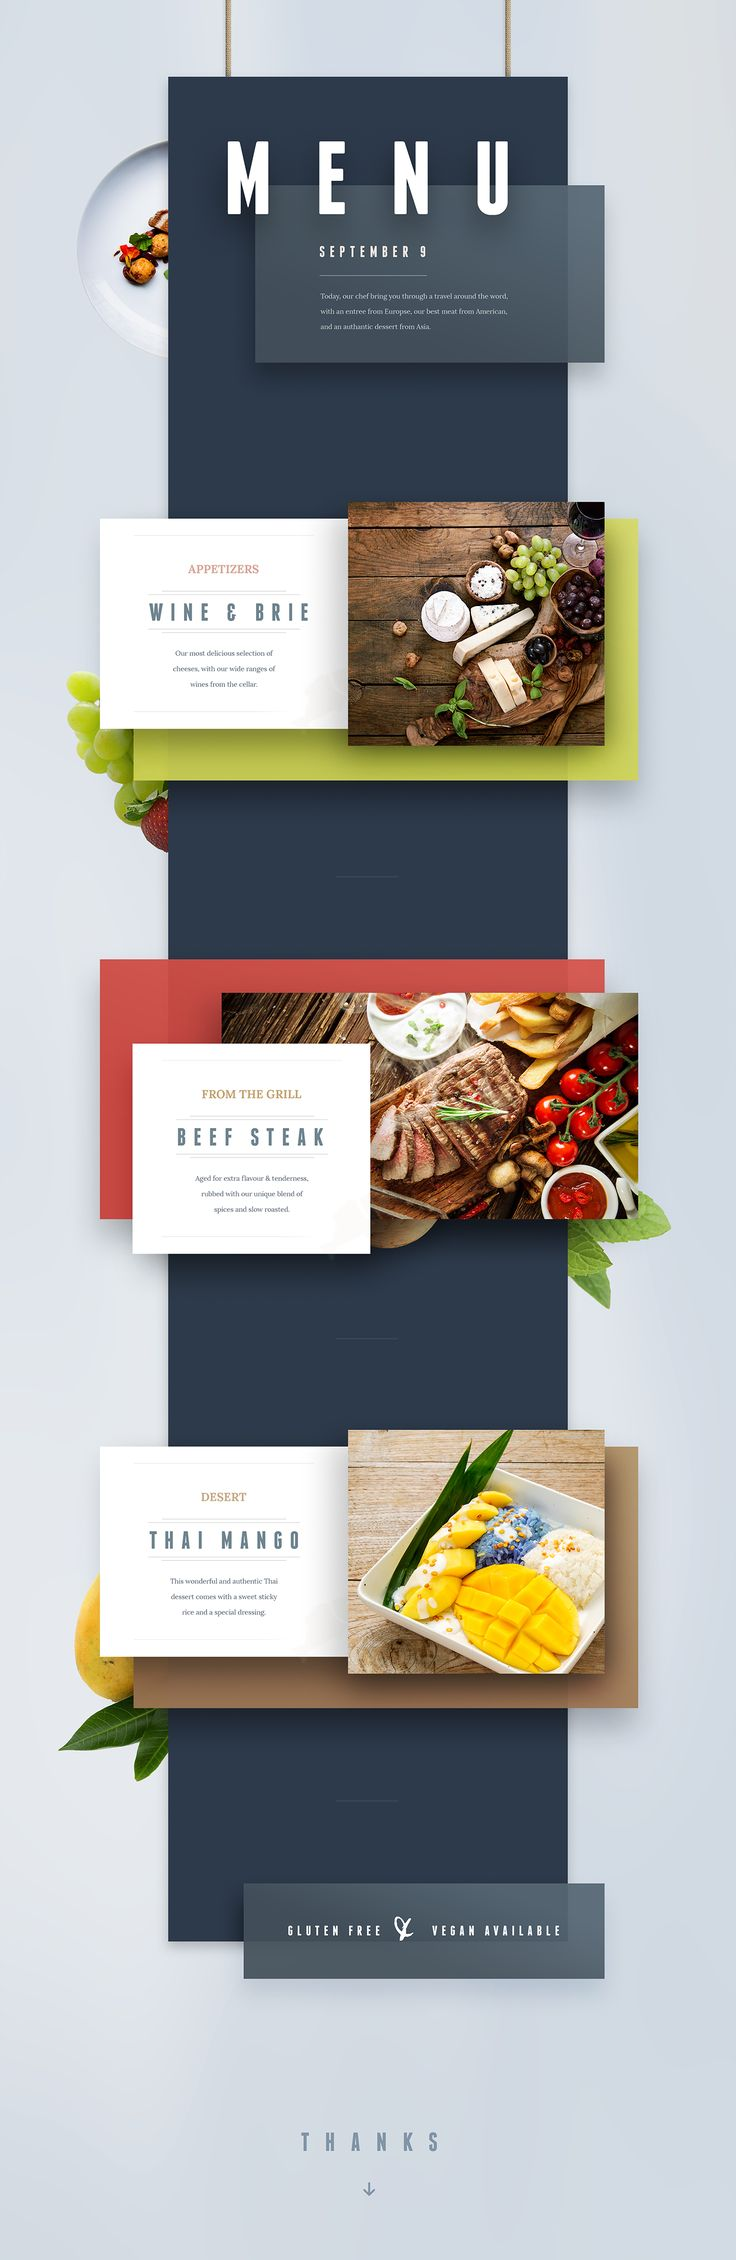 Posted in misc designs - Menu Page Design